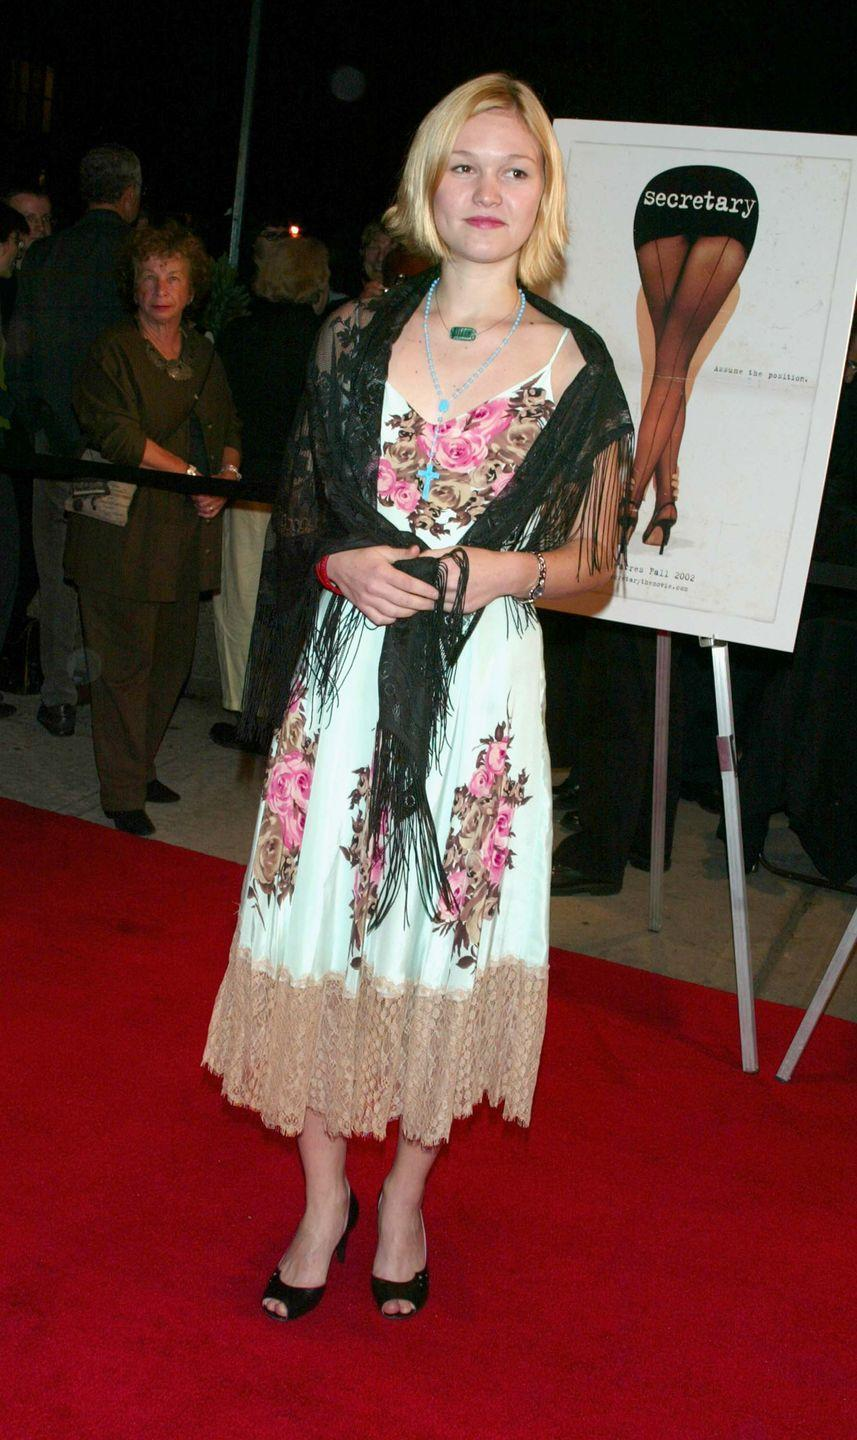 <p>Julia threw a fringed shawl on top of a floral tea-length dress when attending the premiere of her movie <em>Secretary</em>, because why not?!</p>